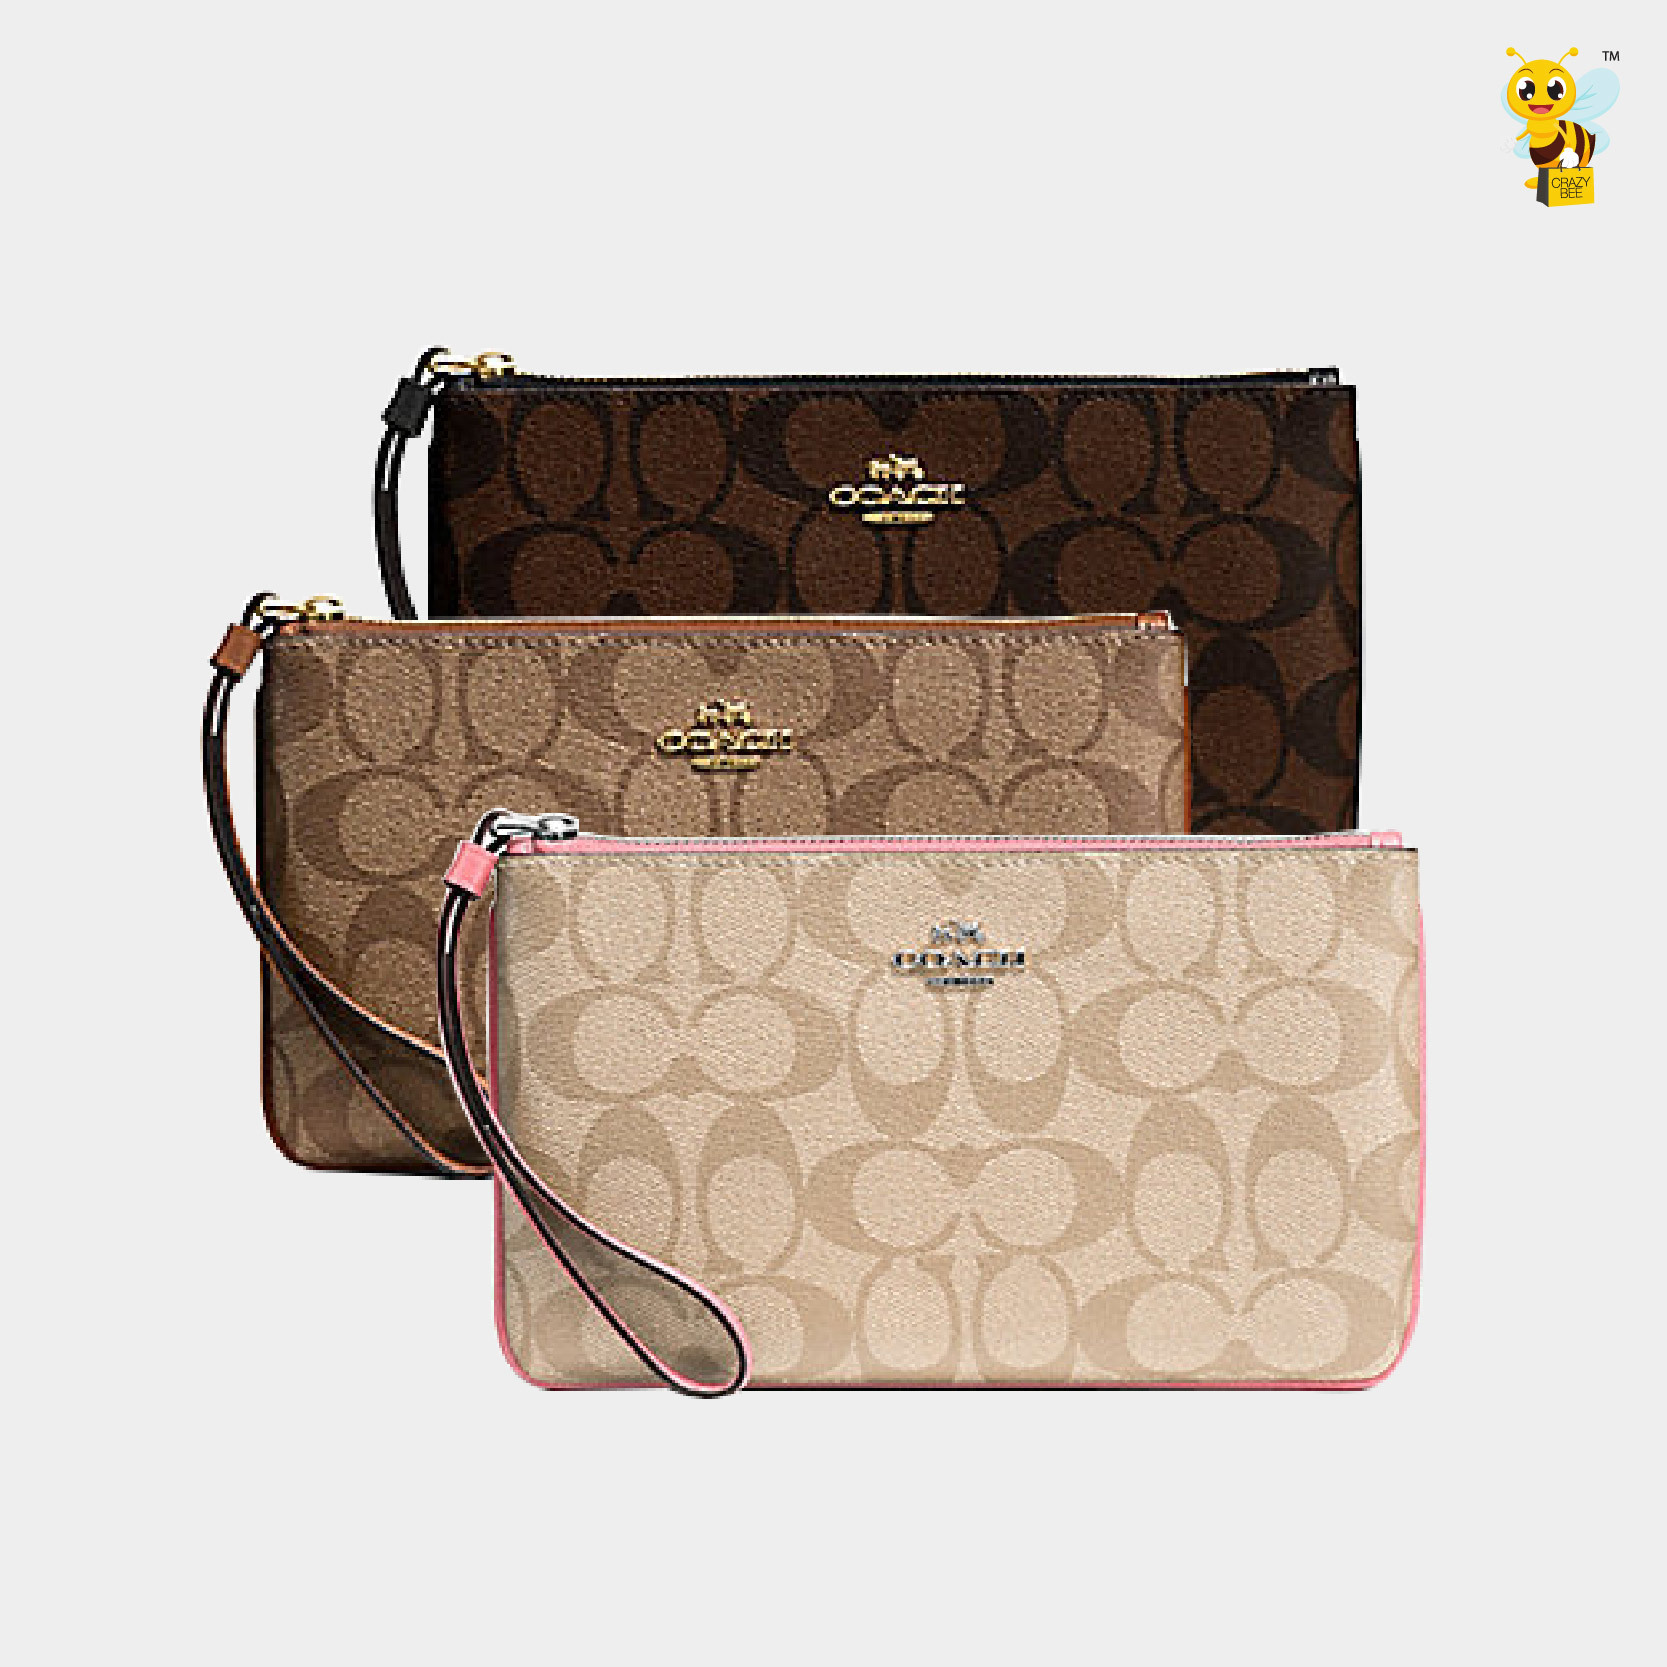 d8d12ddf0aac ... where can i buy coach pre order f58695 large wristlet in signature  coated canvas 56f6f a71af